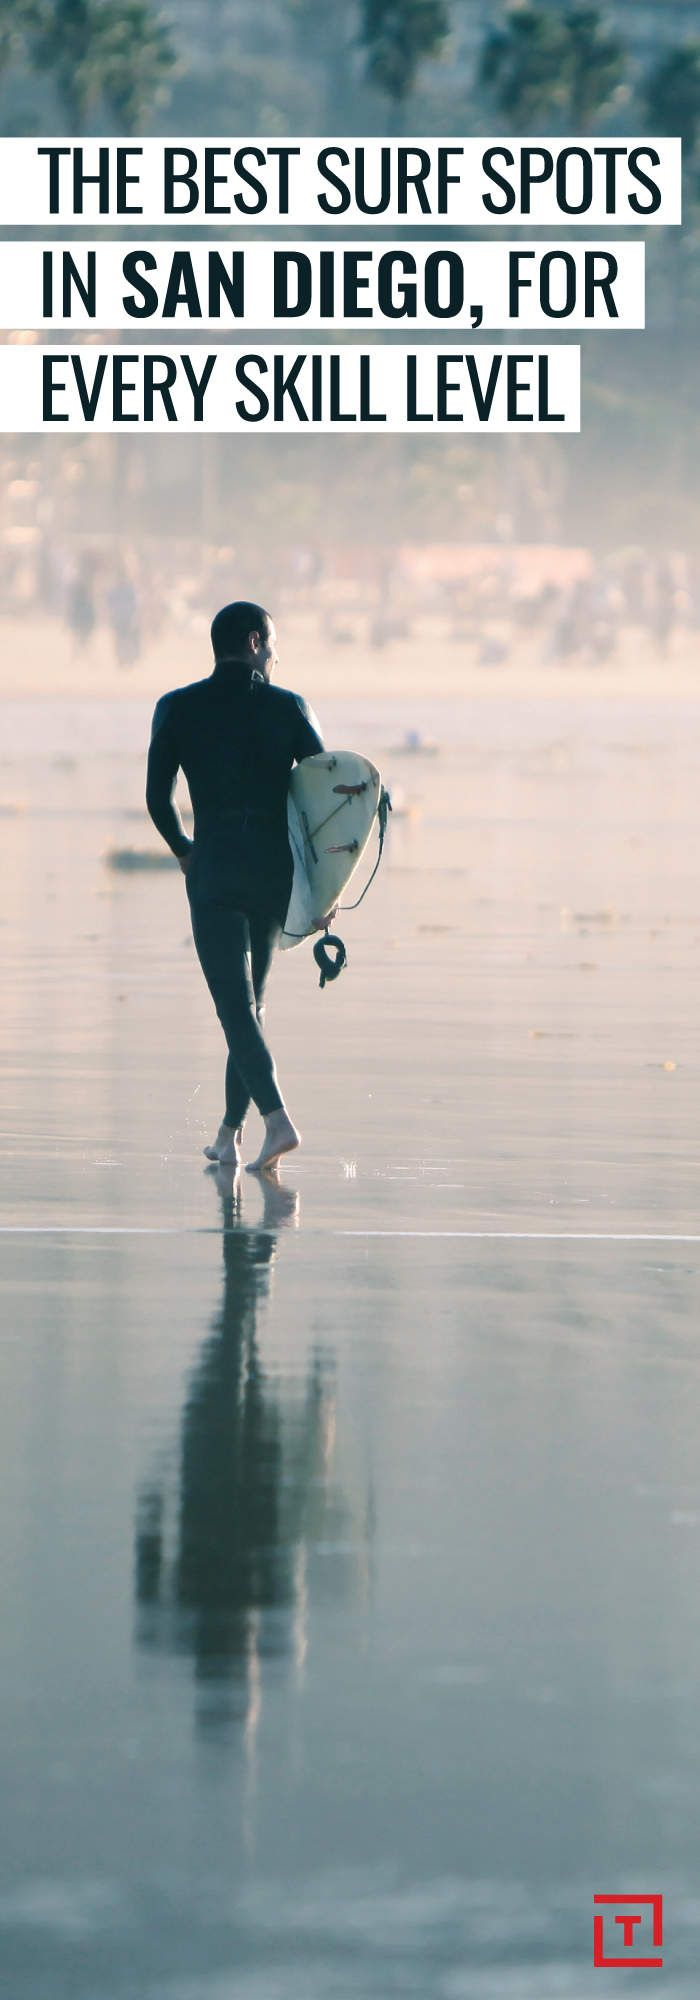 The best surf spots in San Diego, for every skill level